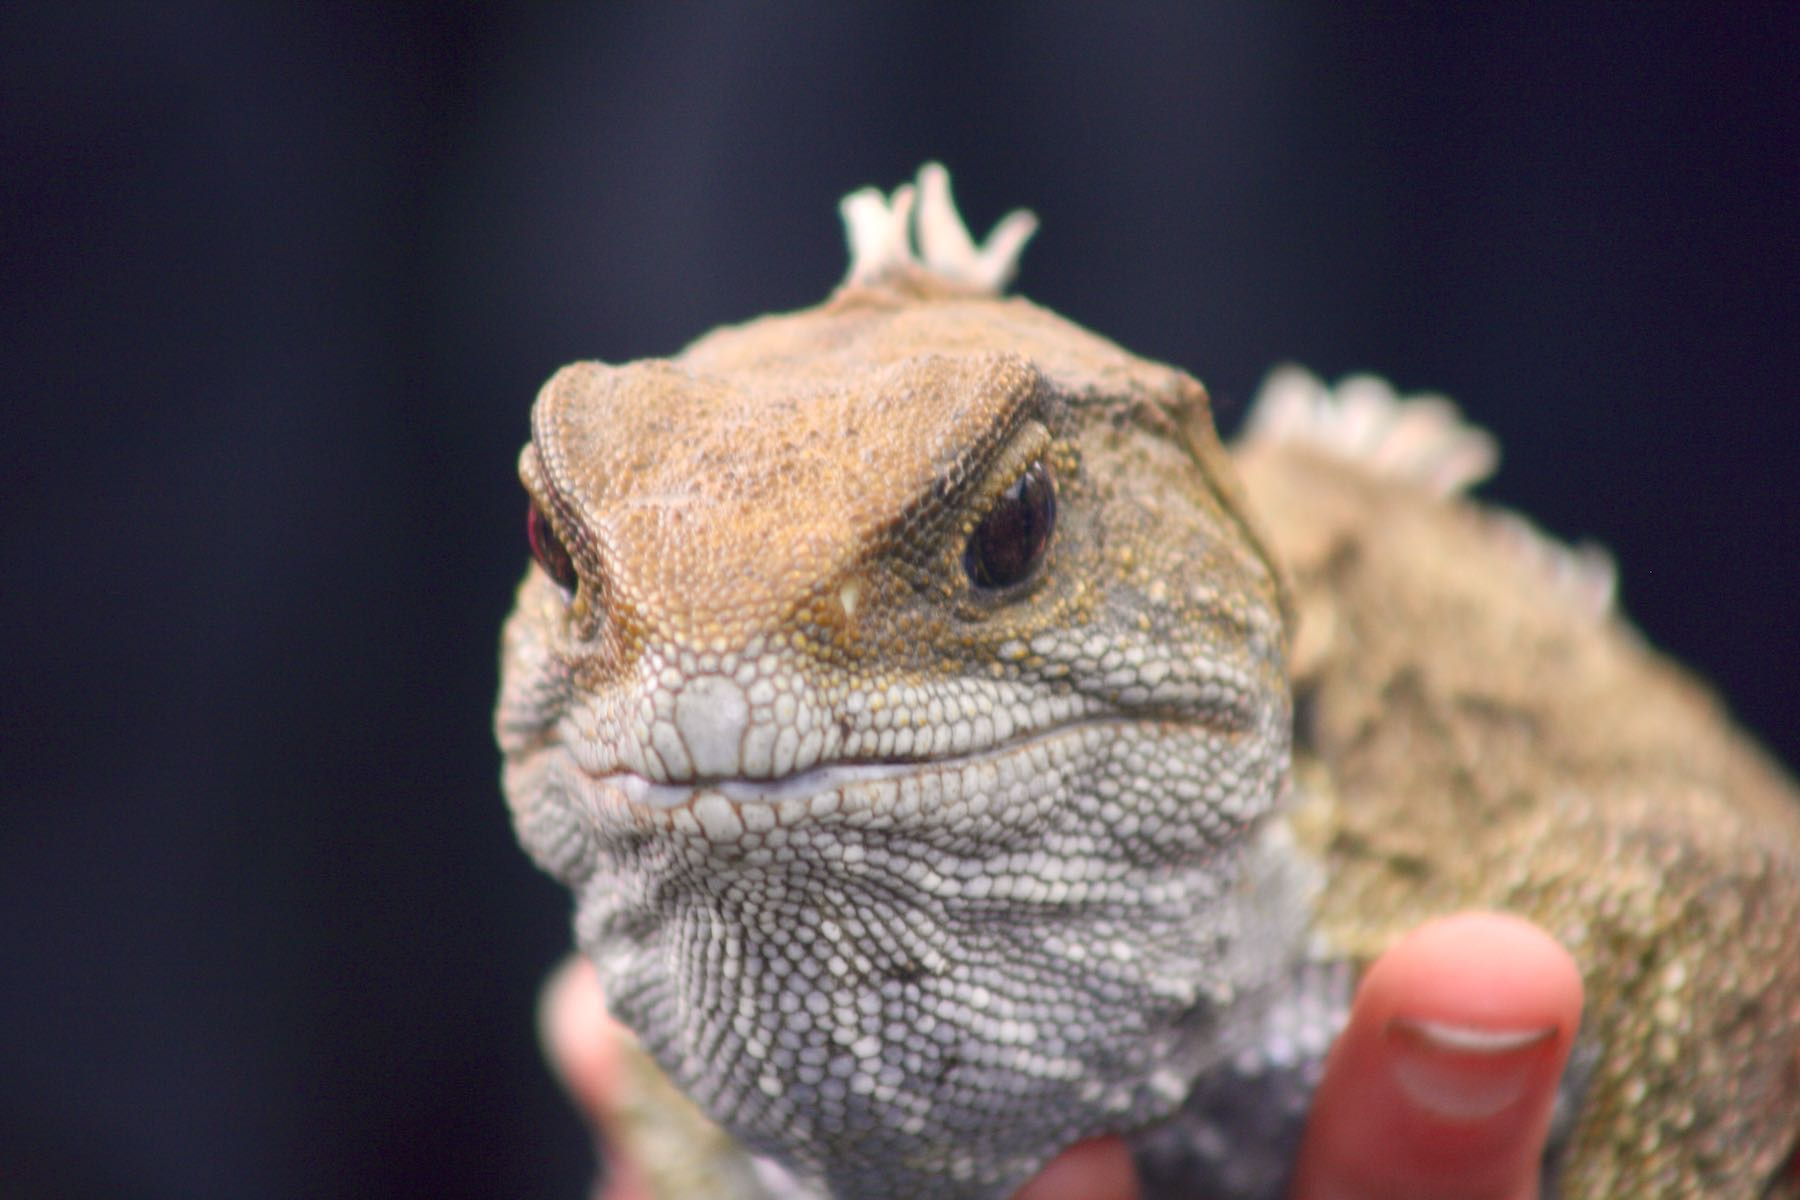 Closeup of tuatara face.